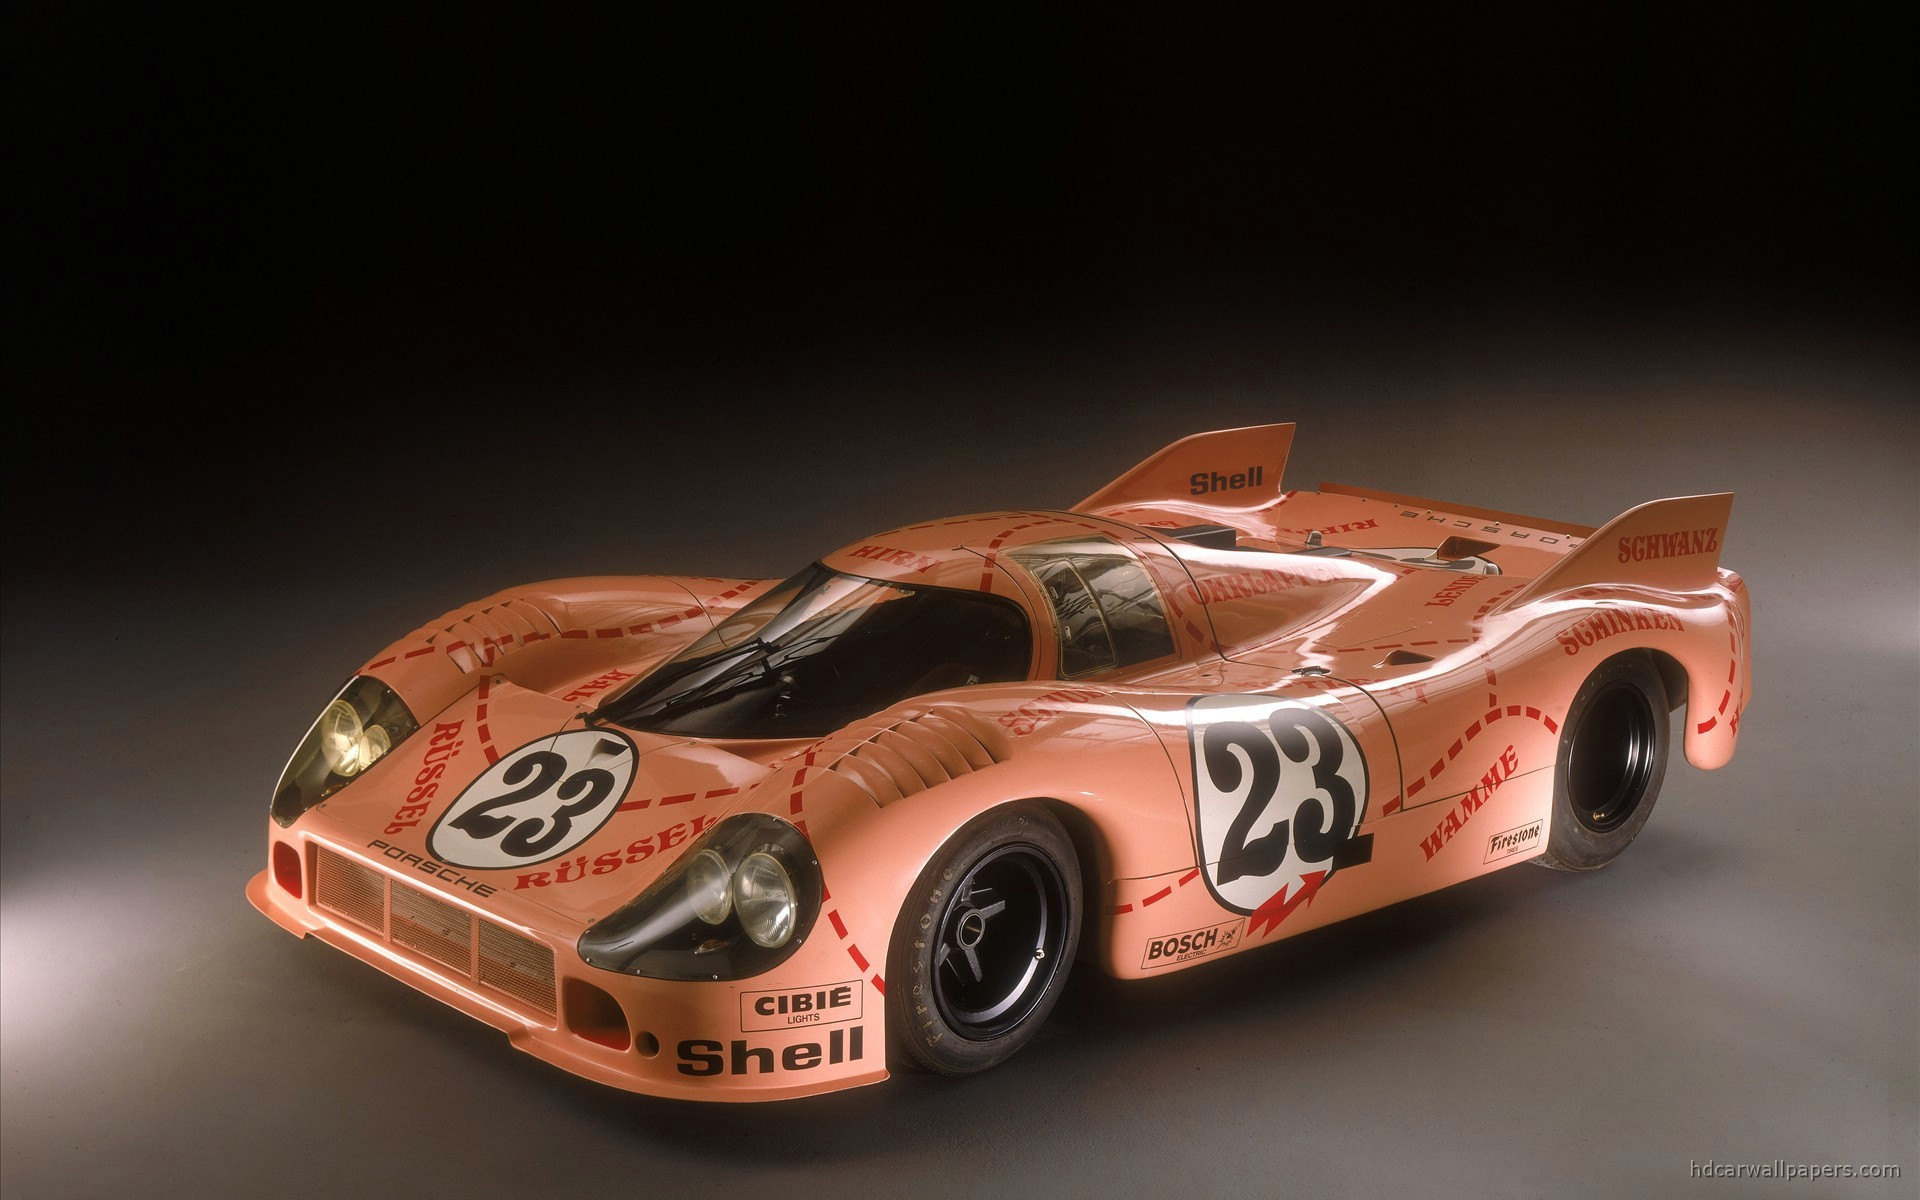 Race Car Wallpaper For Iphone Porsche 917 Greatest Racing Car In History Wallpapers Hd